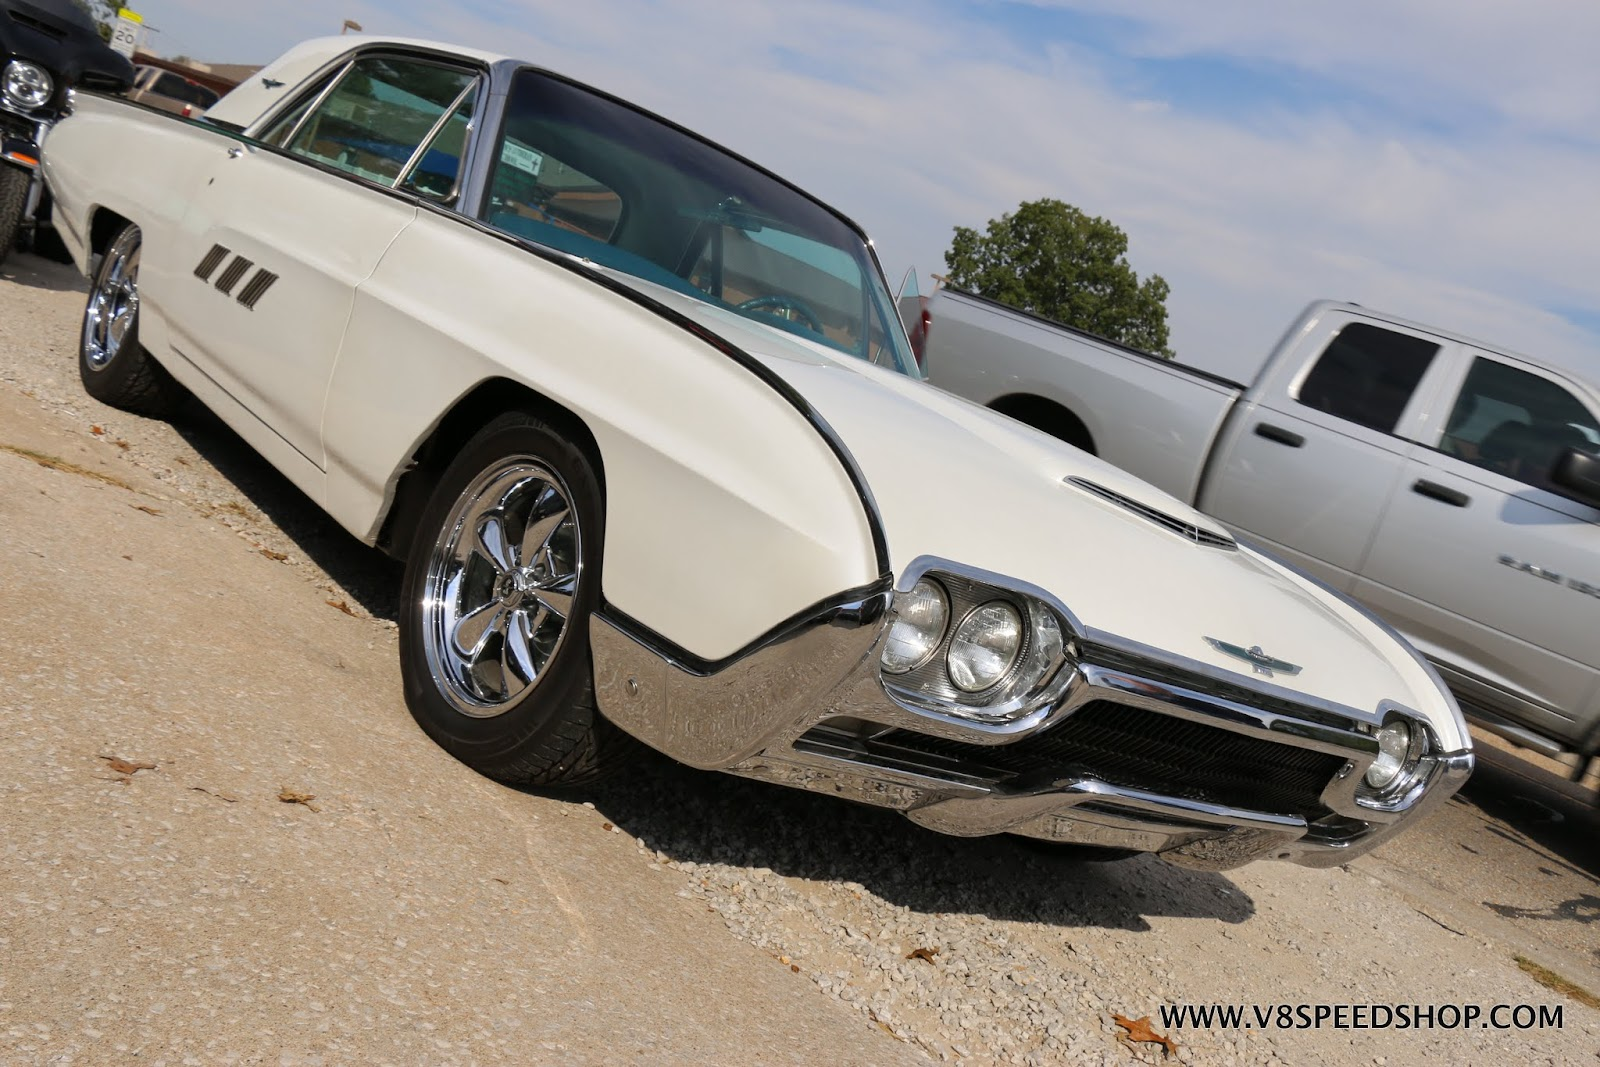 Photo galleries of the Muscle Cars and Classic Cars being restored ...